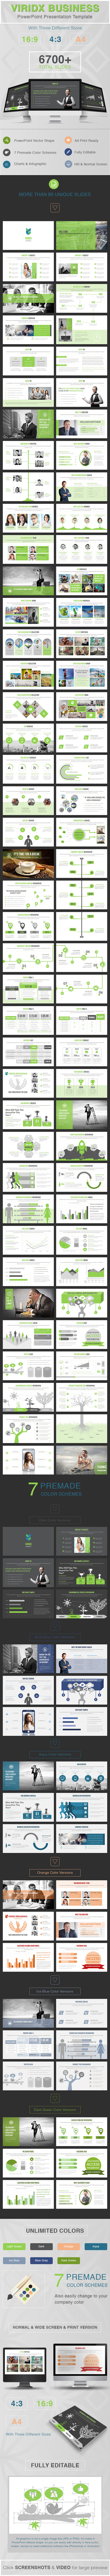 GraphicRiver Viridx Business PowerPoint Presentation Template 11240733